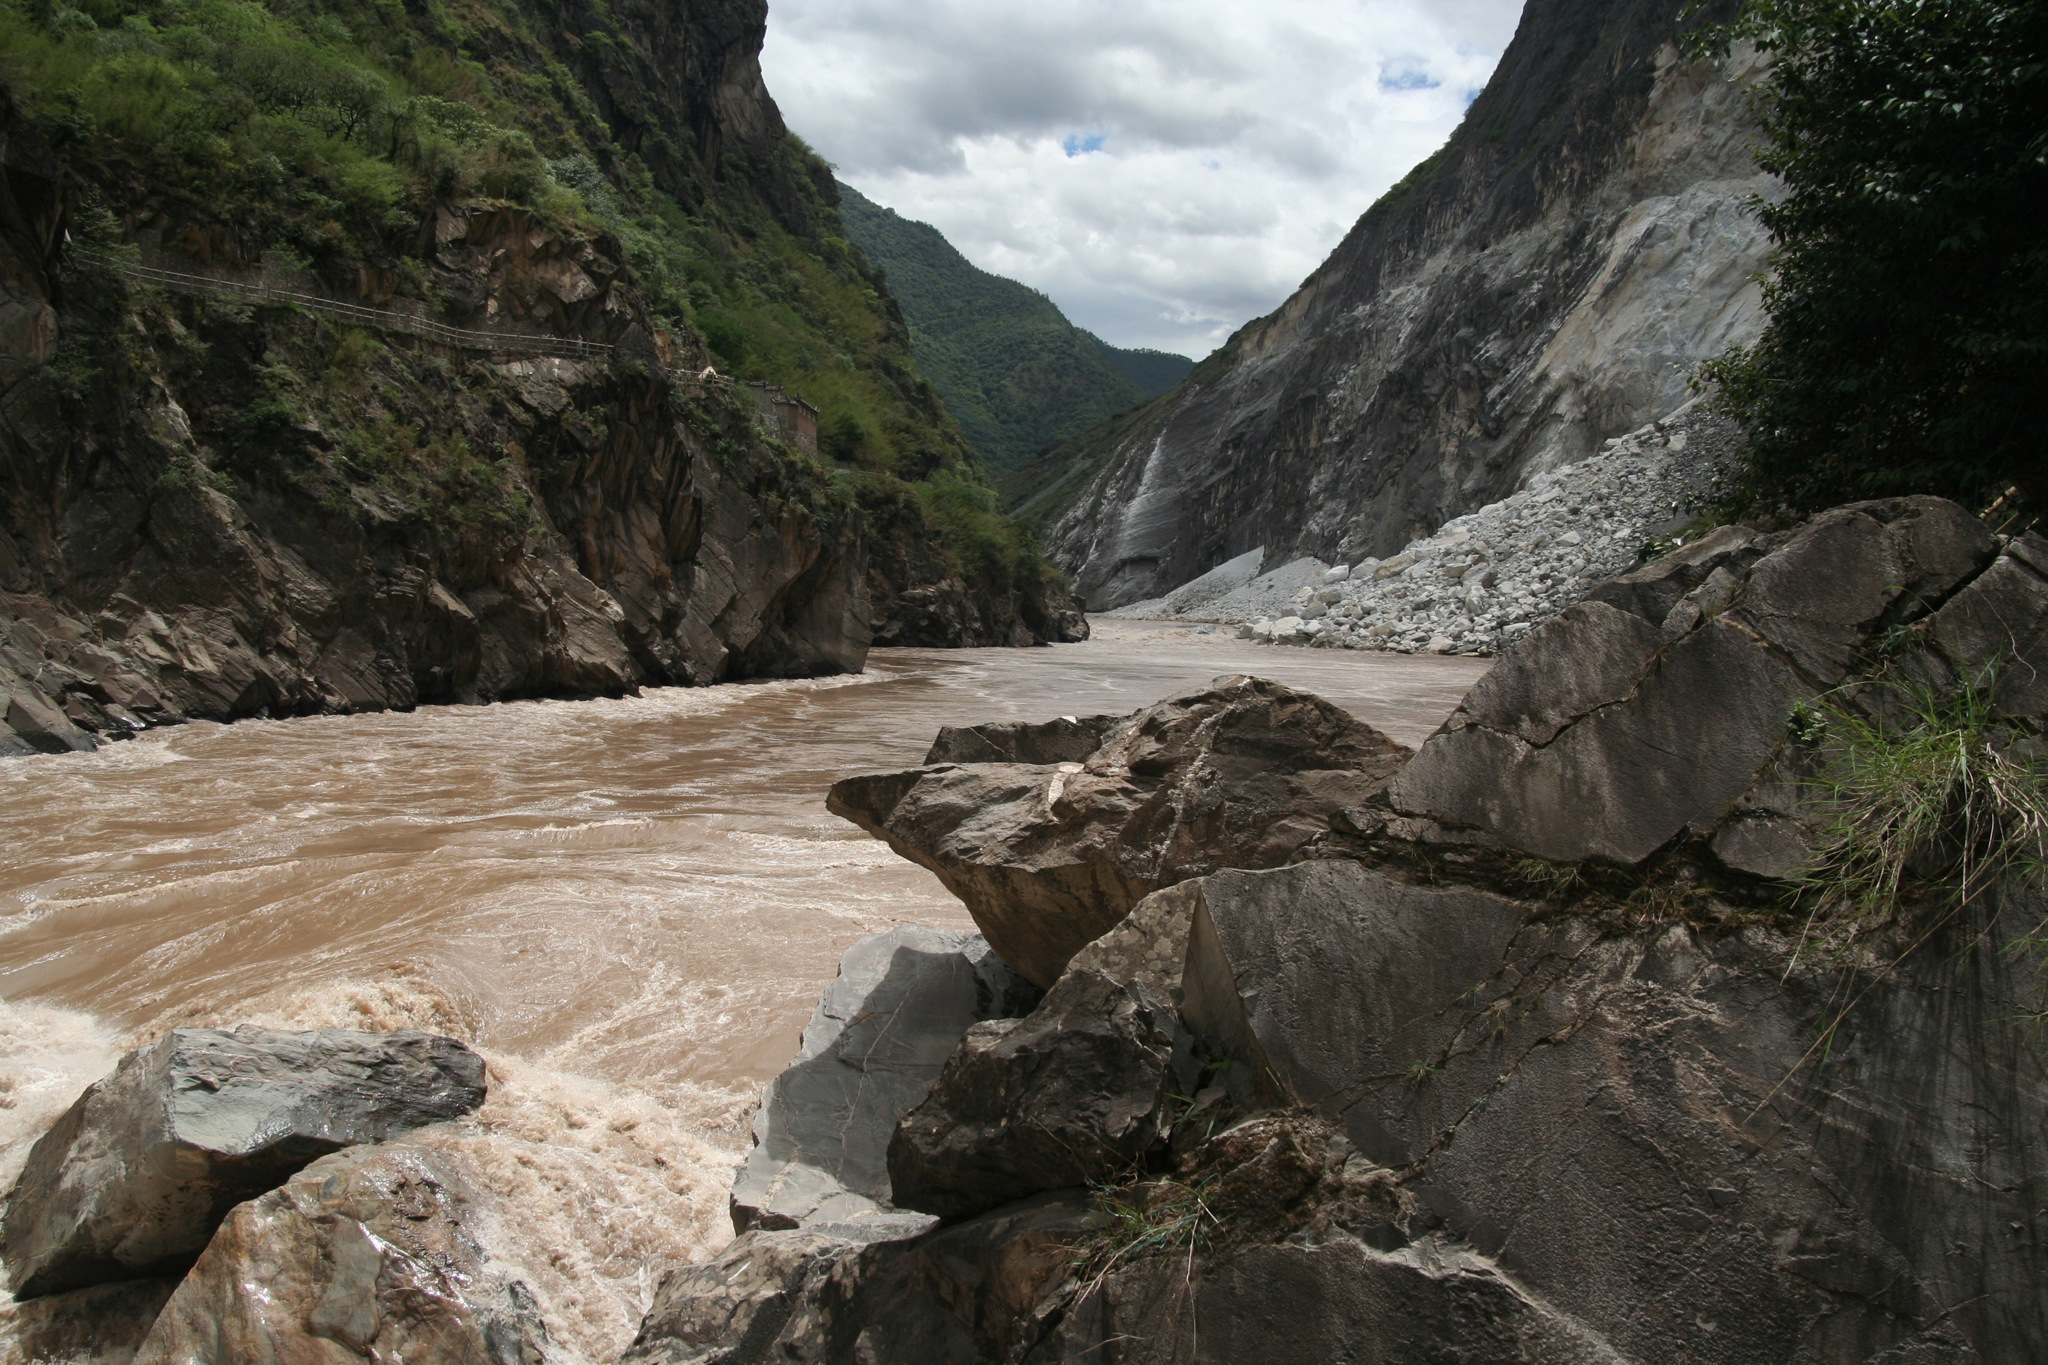 Prelude to the Tiger Leaping Gorge